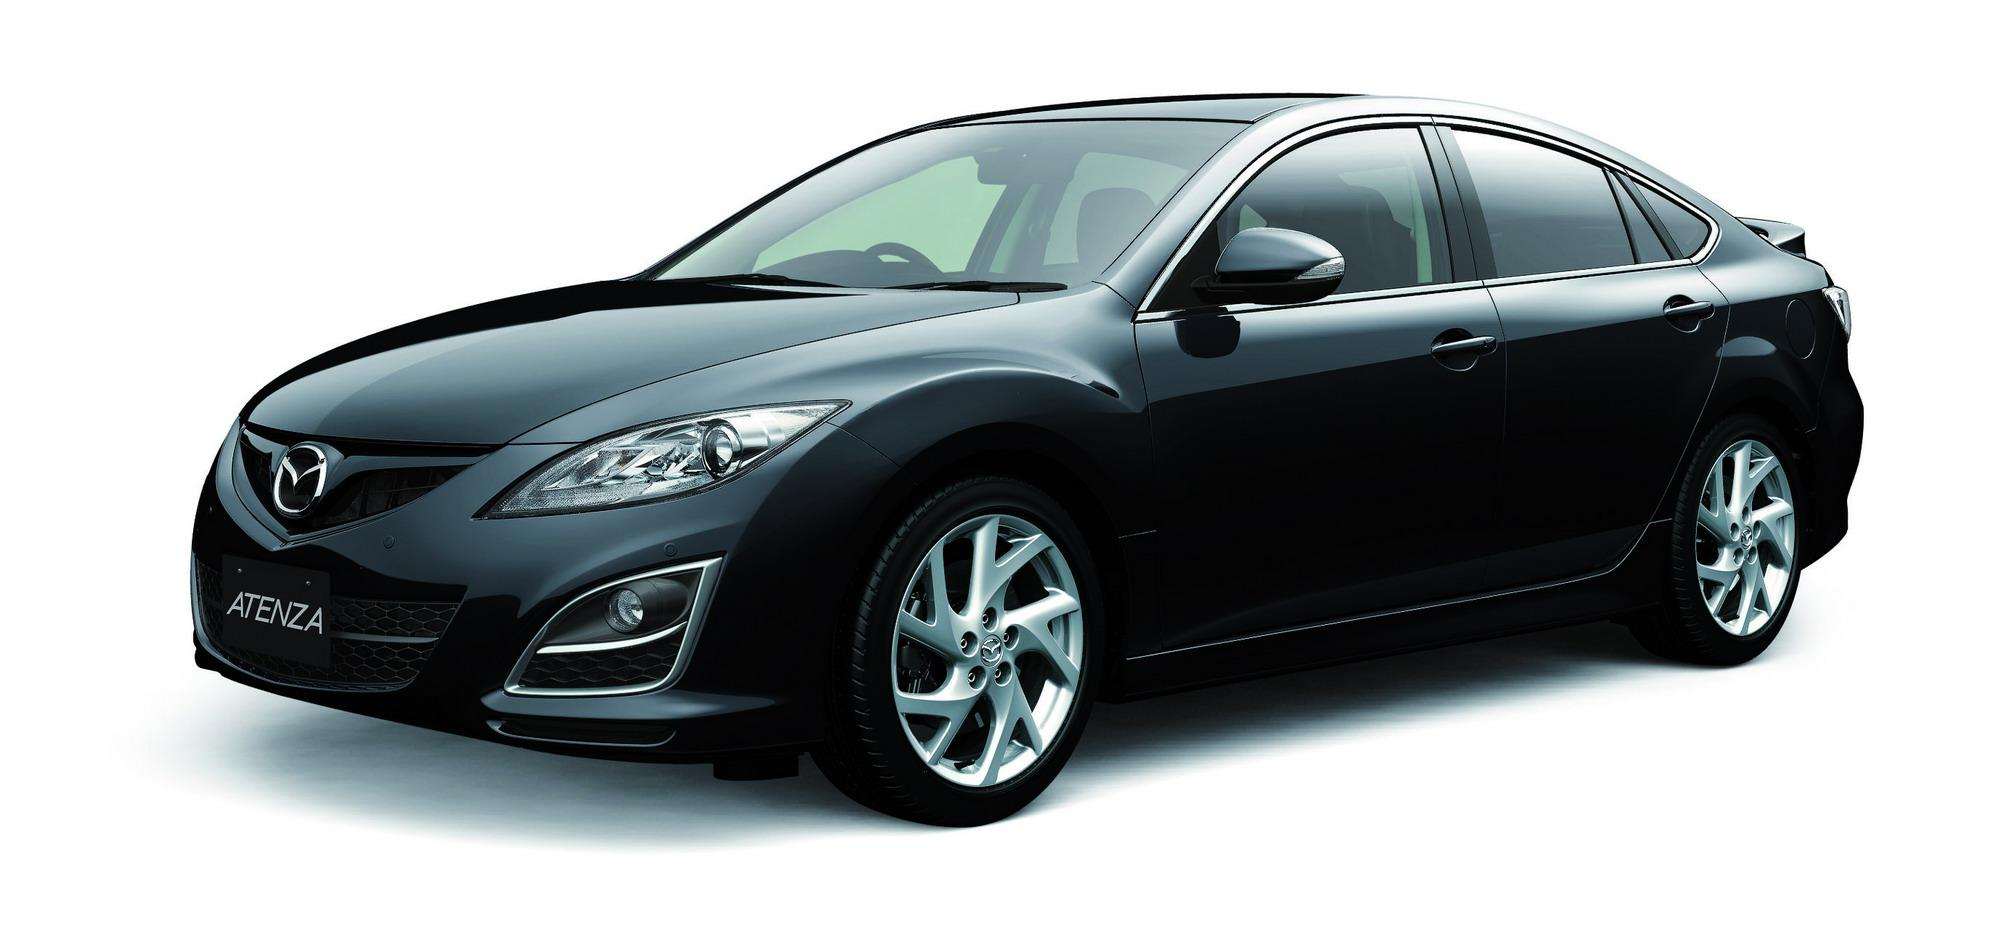 2011 Mazda6 Top Speed